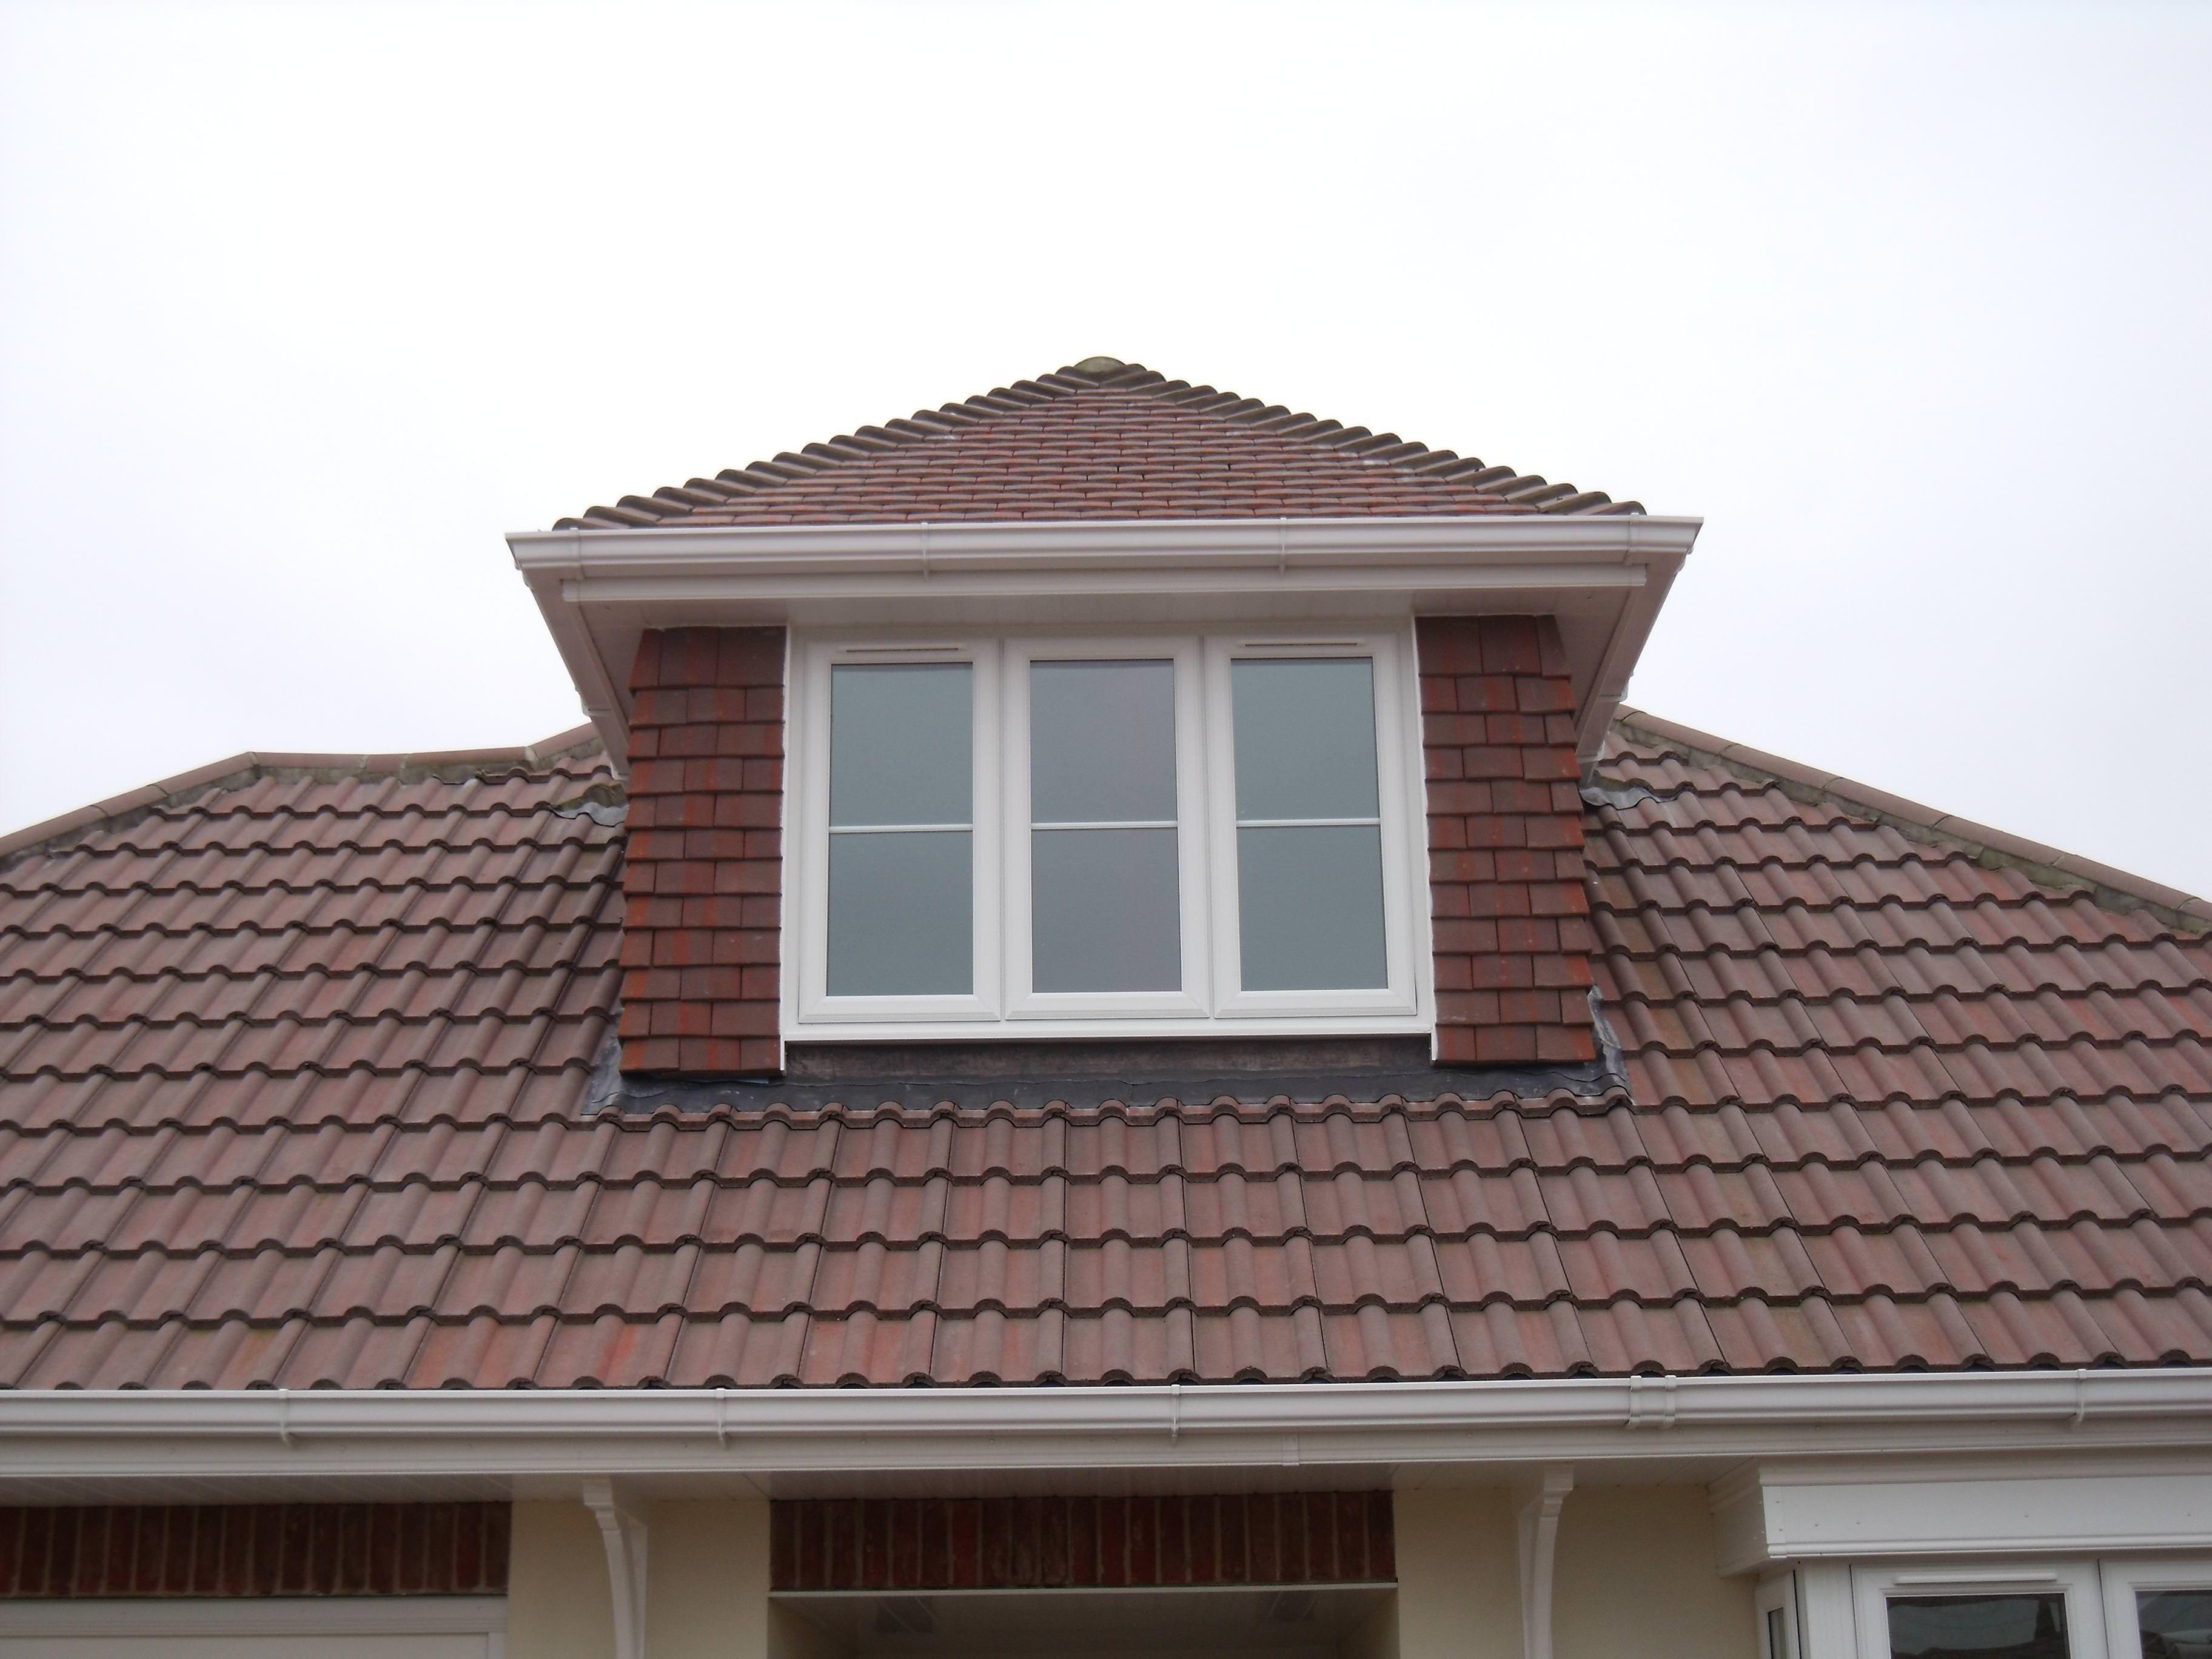 Picture of: Dormer Windows Uk